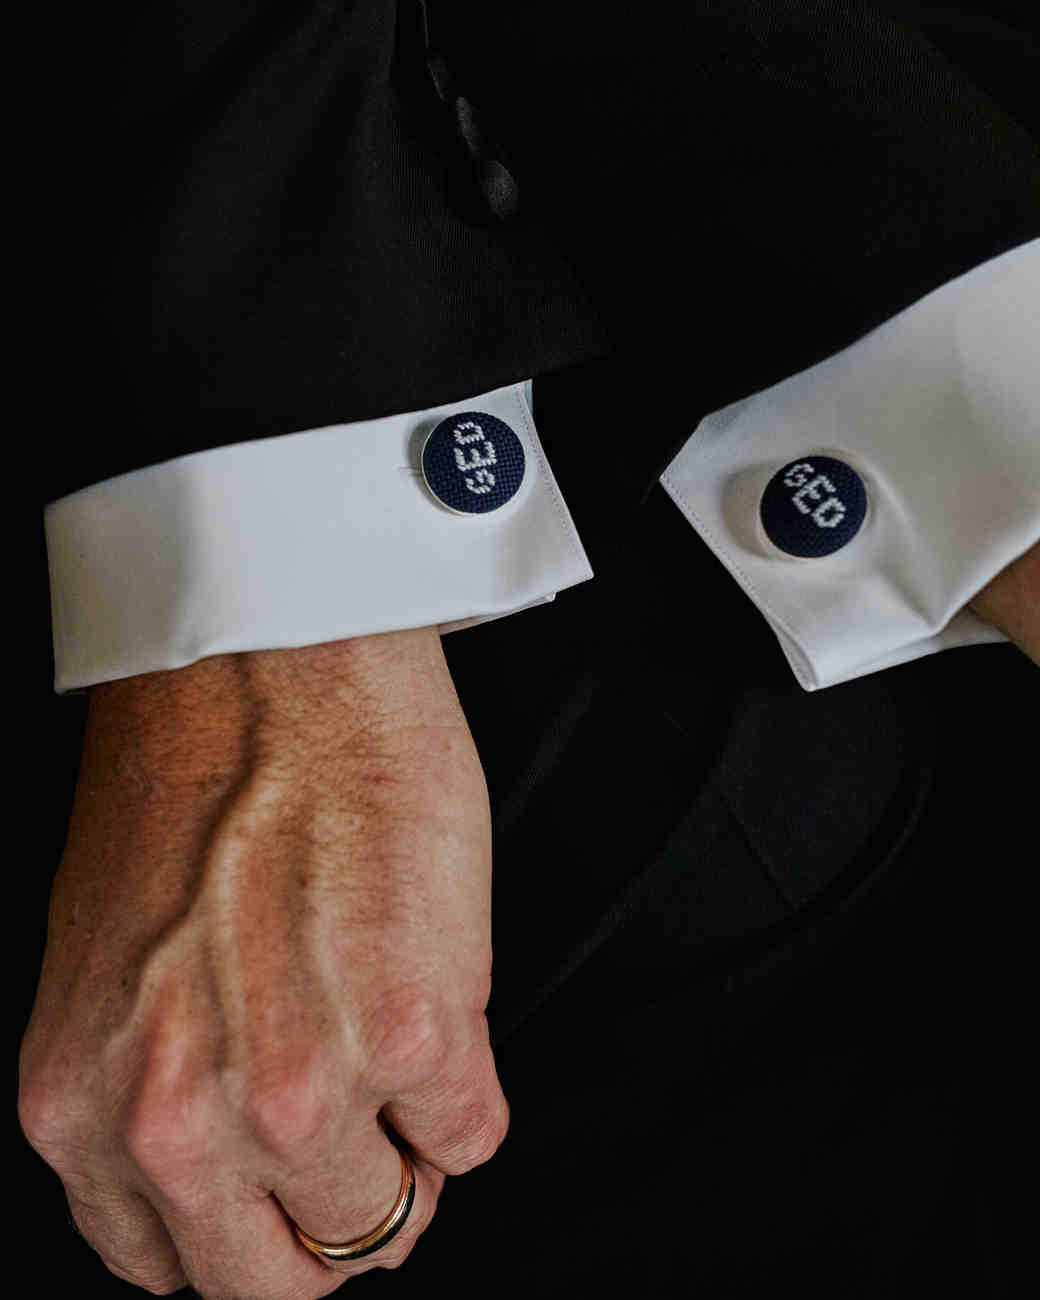 nancy-nathan-wedding-cufflinks-0554-6141569-0816.jpg